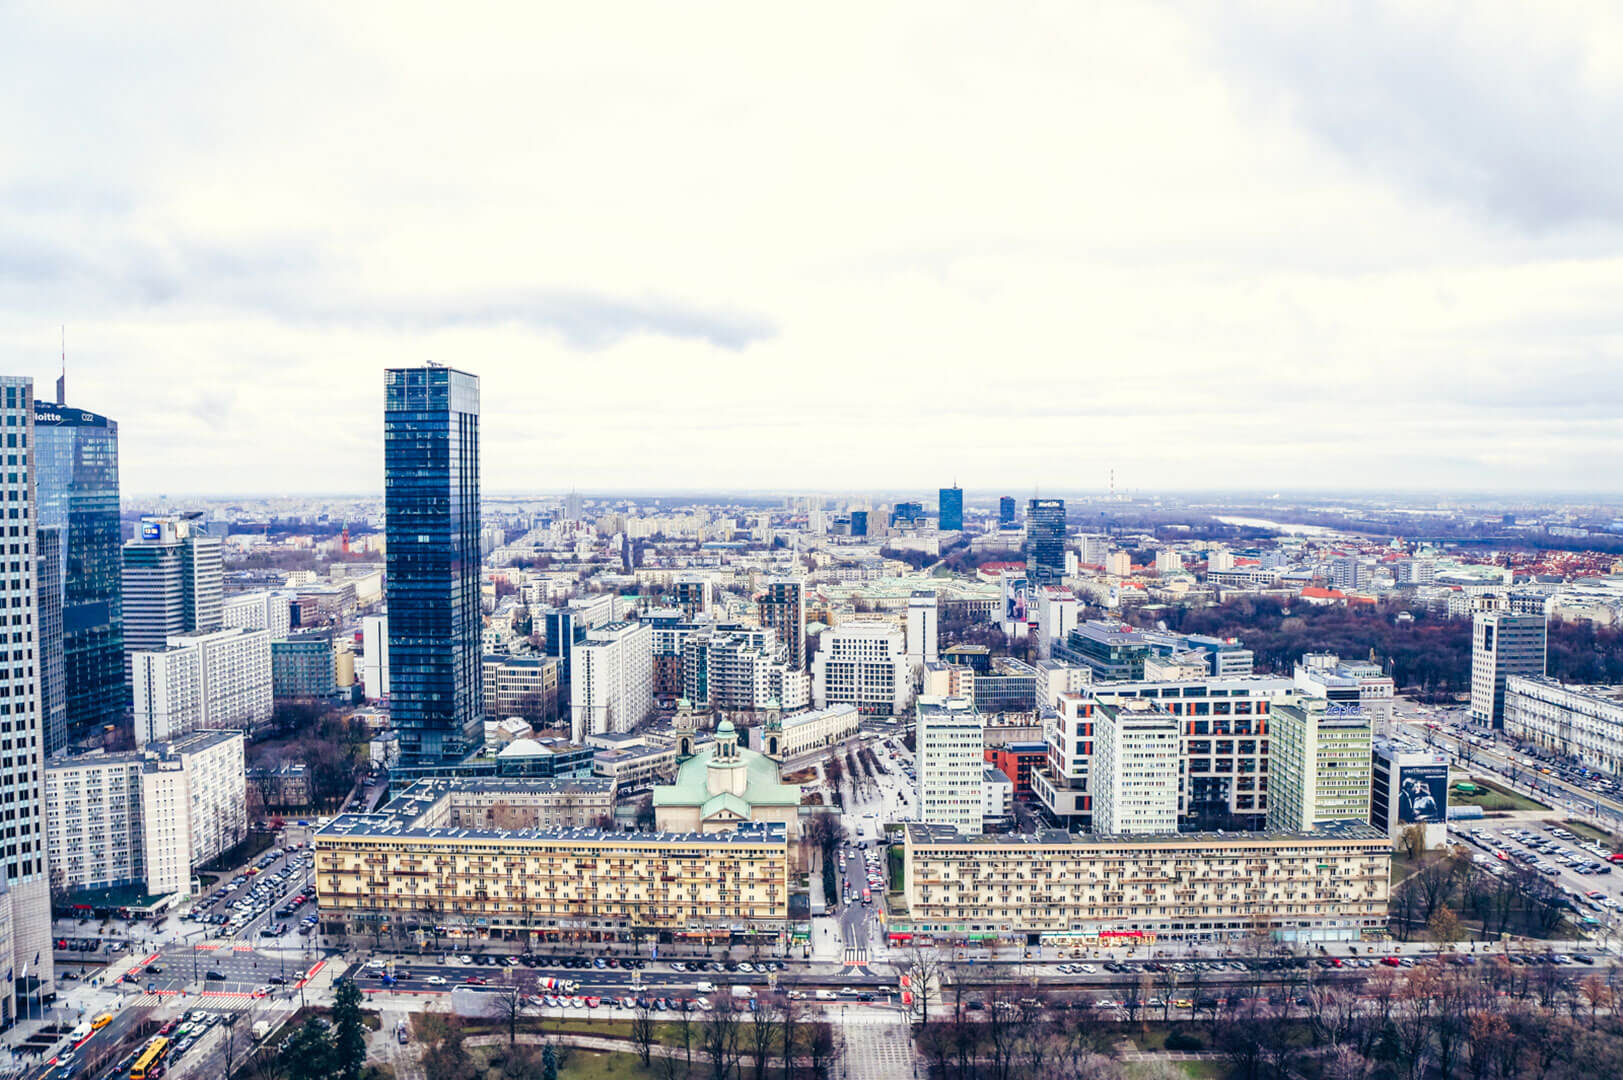 warsaw-poland-guide-la-vie-en-blog-all-rights-reserved-63